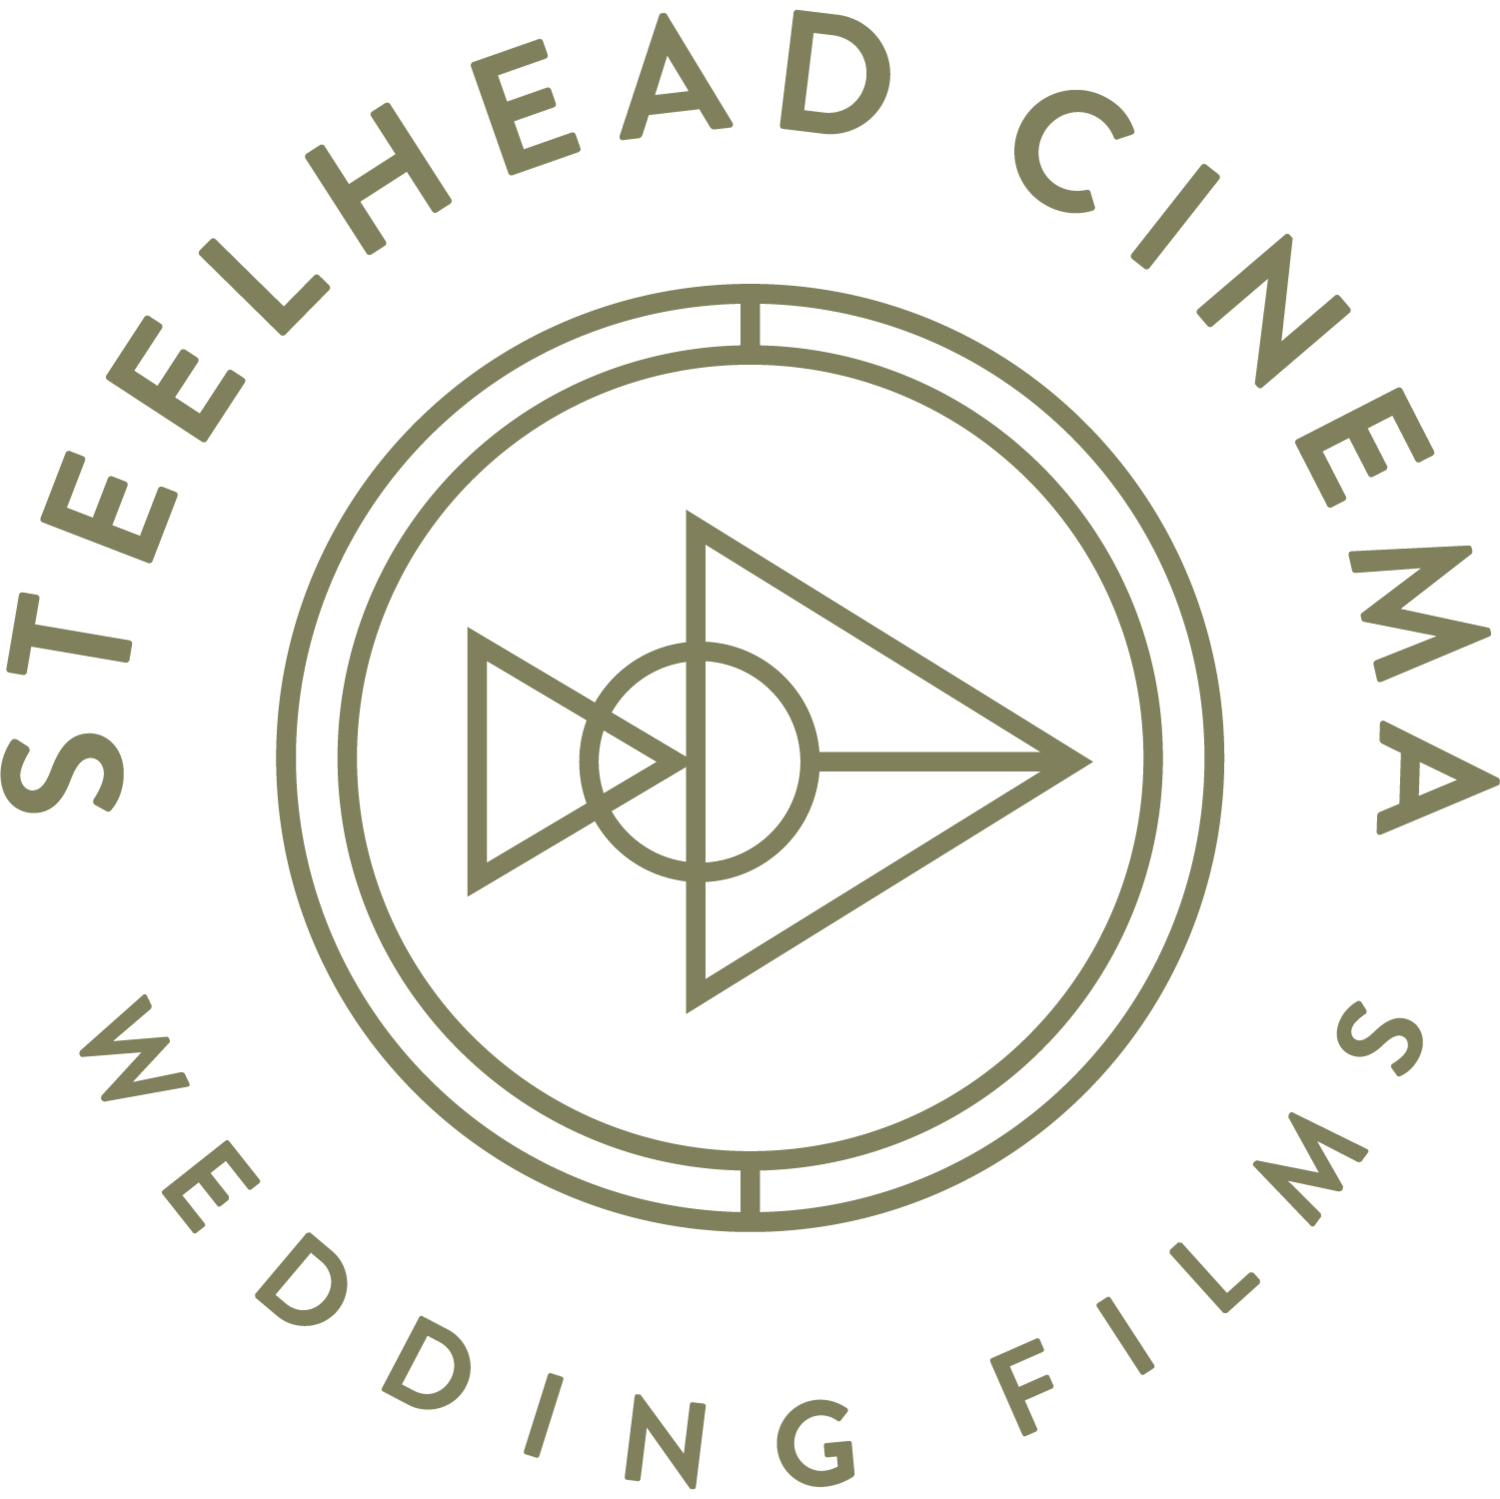 Steelhead Cinema